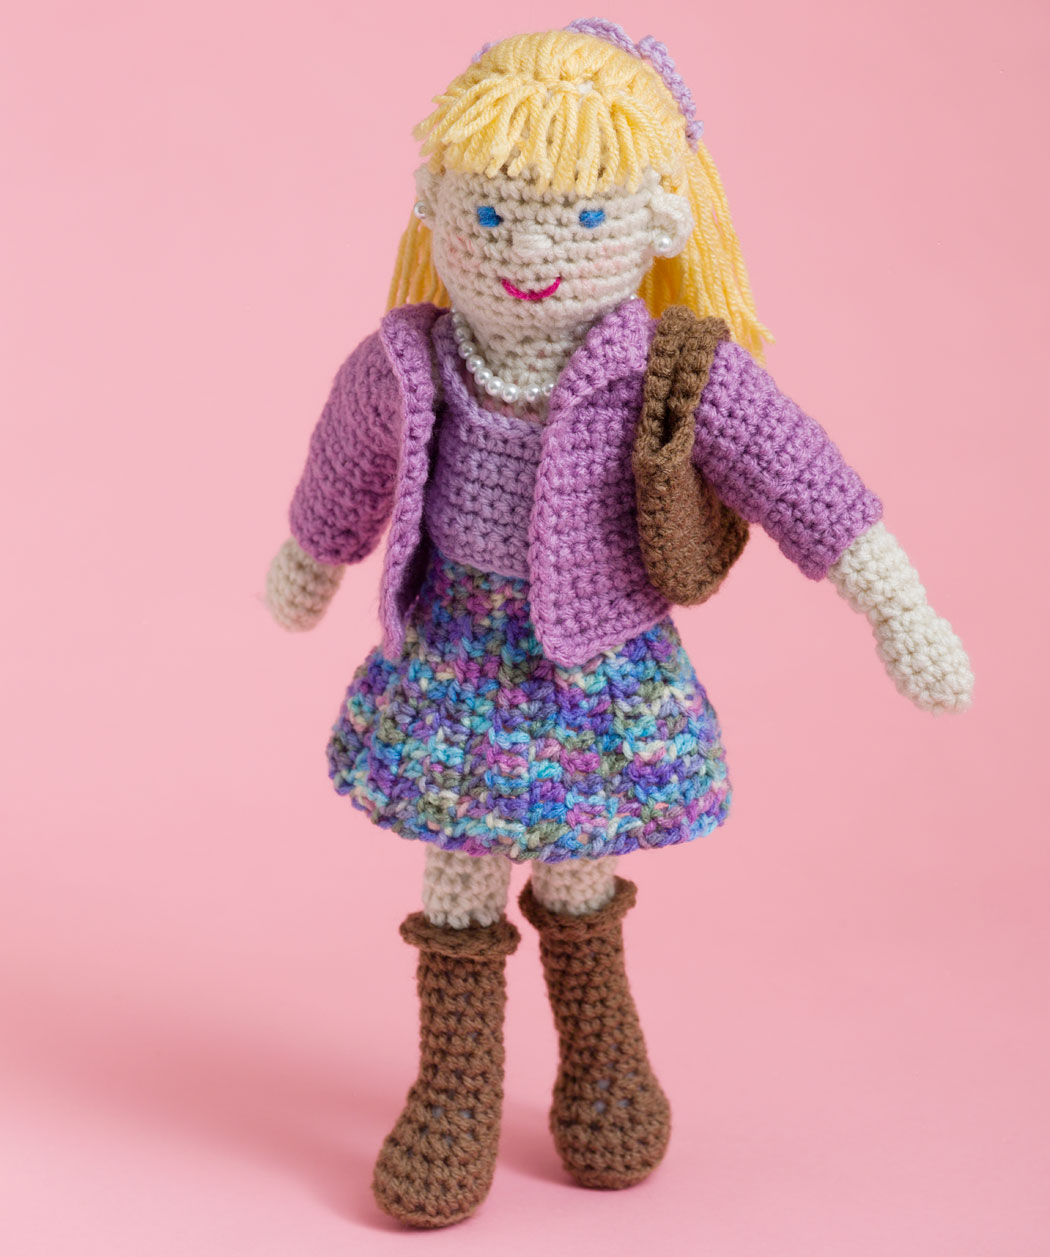 Crochet Doll Pattern Easy : 2000 Free Amigurumi Patterns: Free Lovely Lucy Doll ...